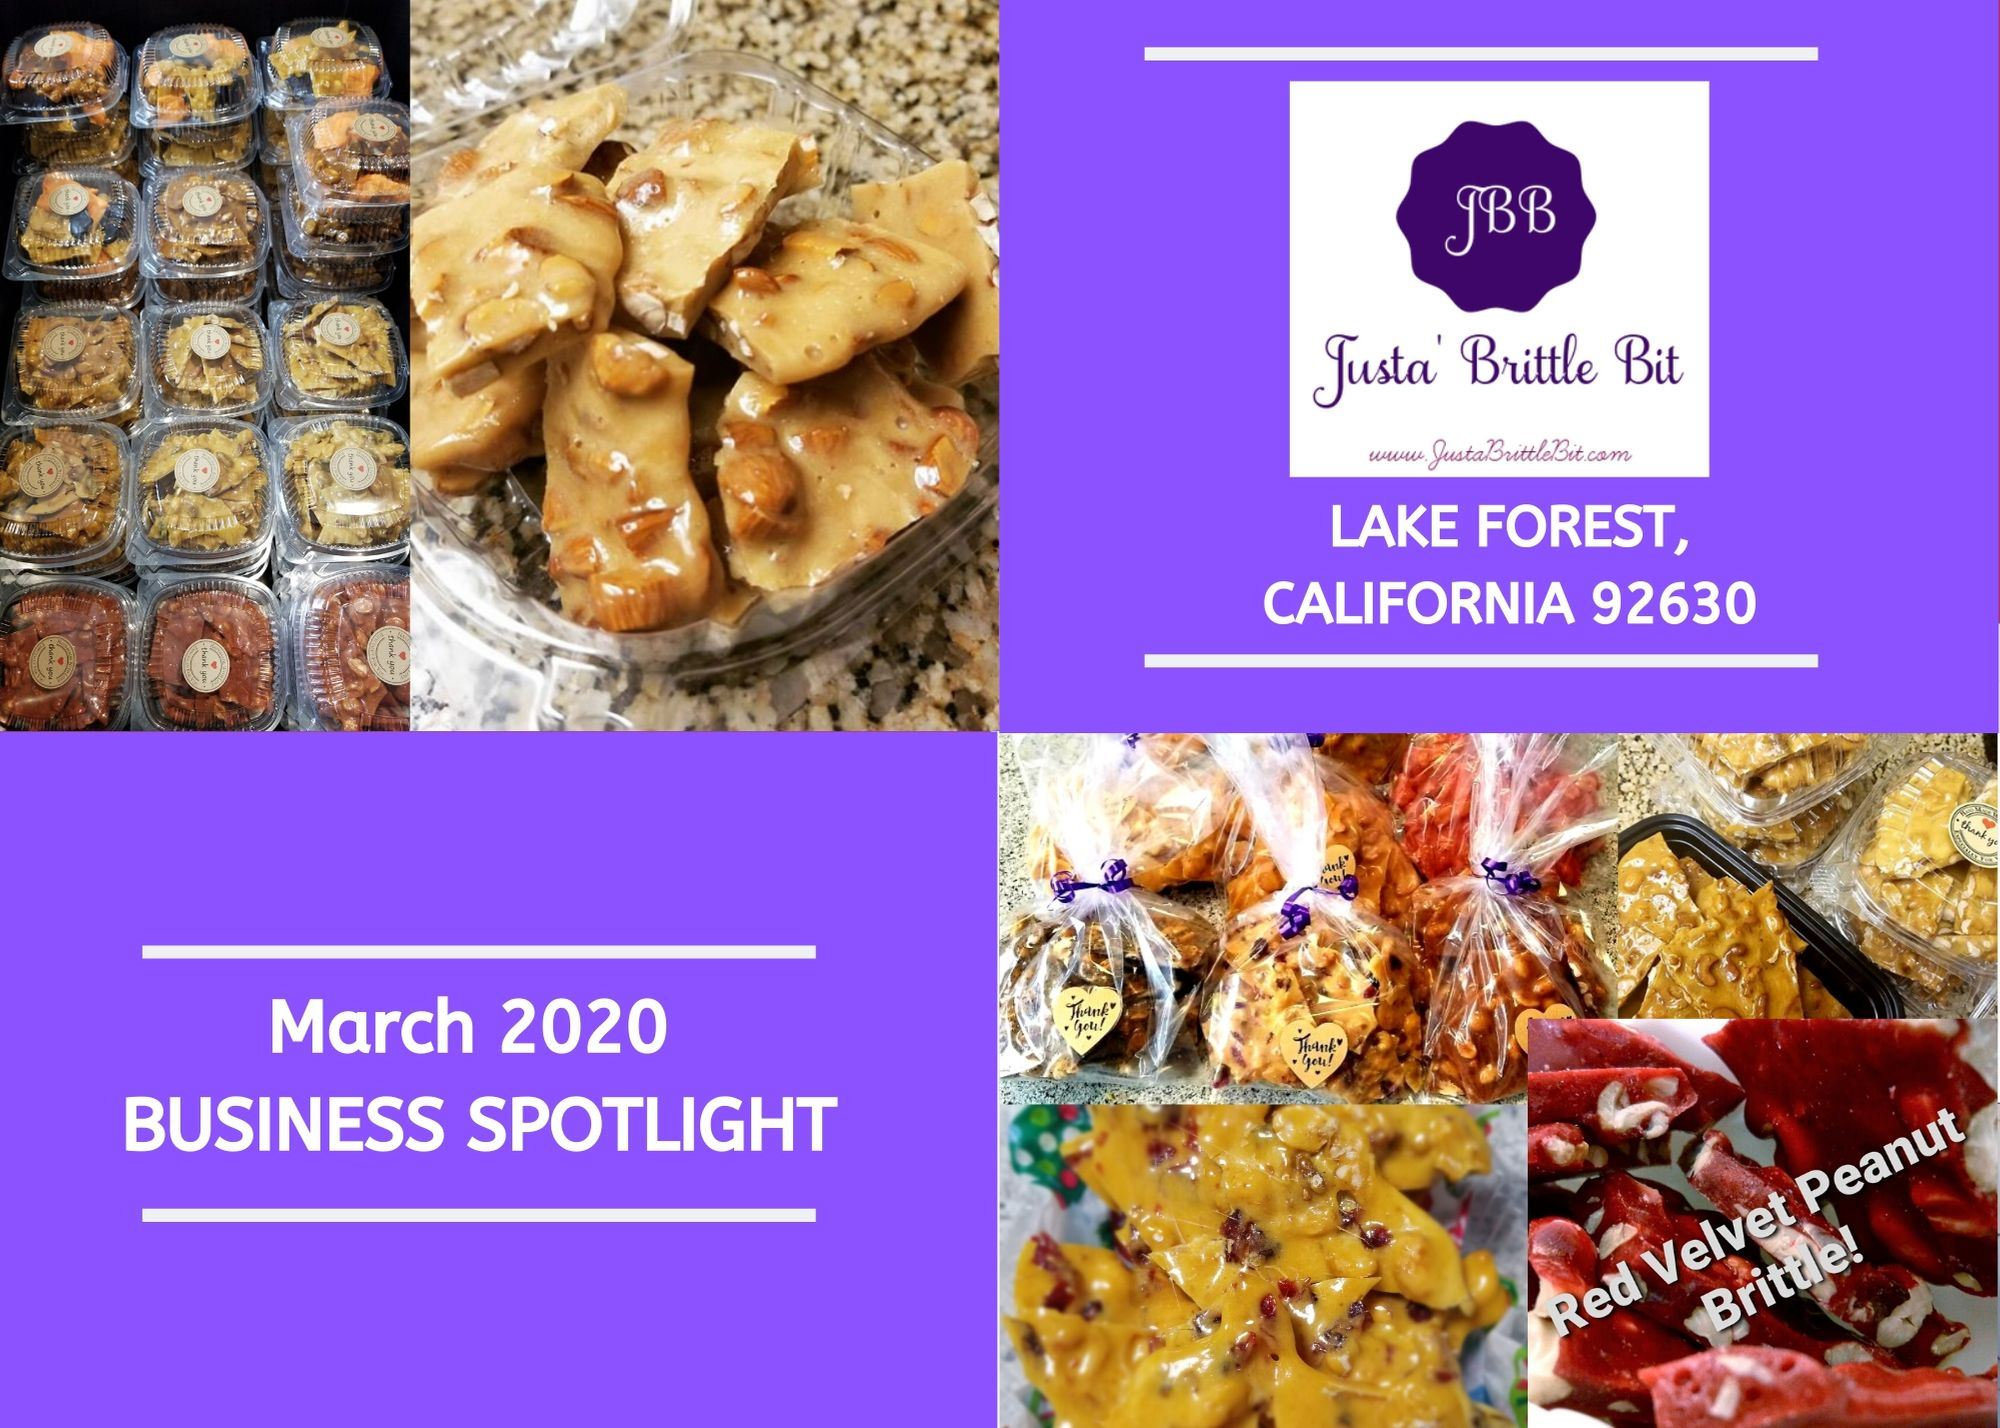 March 2020 Business Spotlight Photo Collage